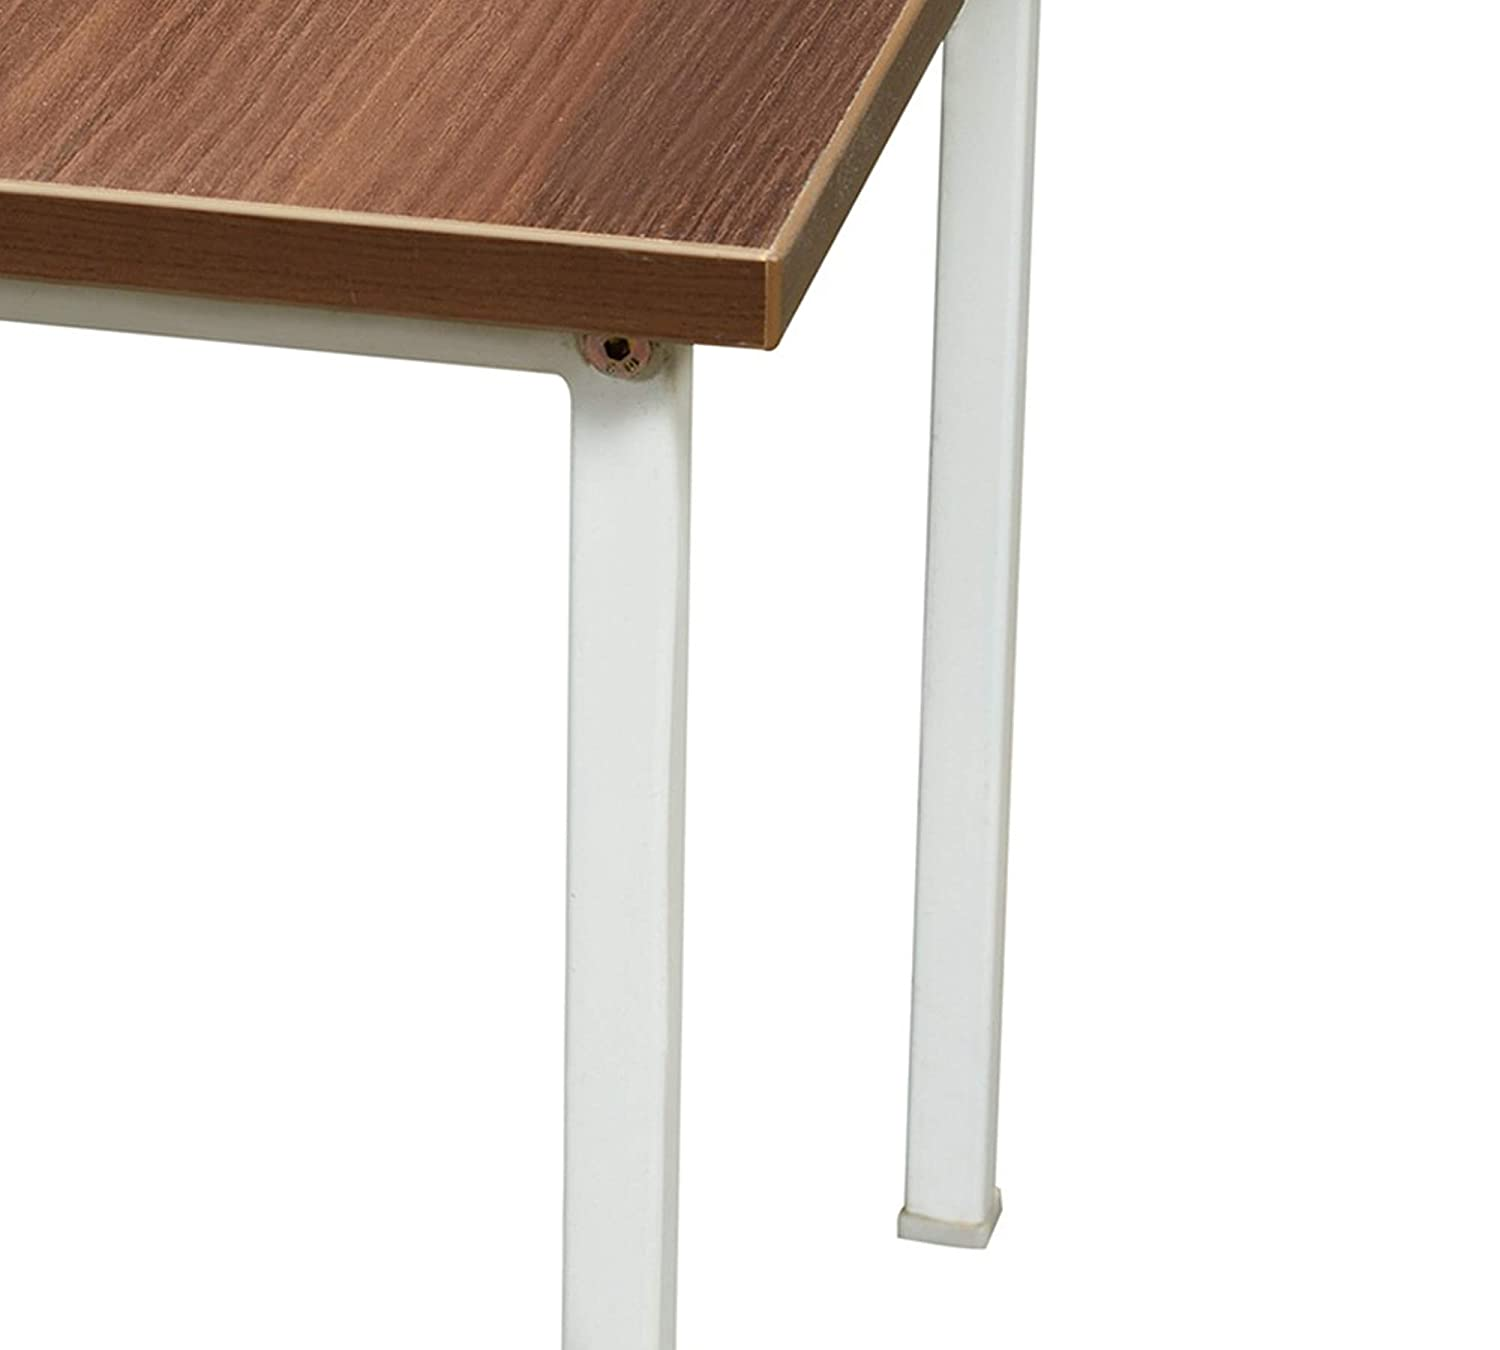 Lakdi Side Table with Wooden Top and Metal Legs